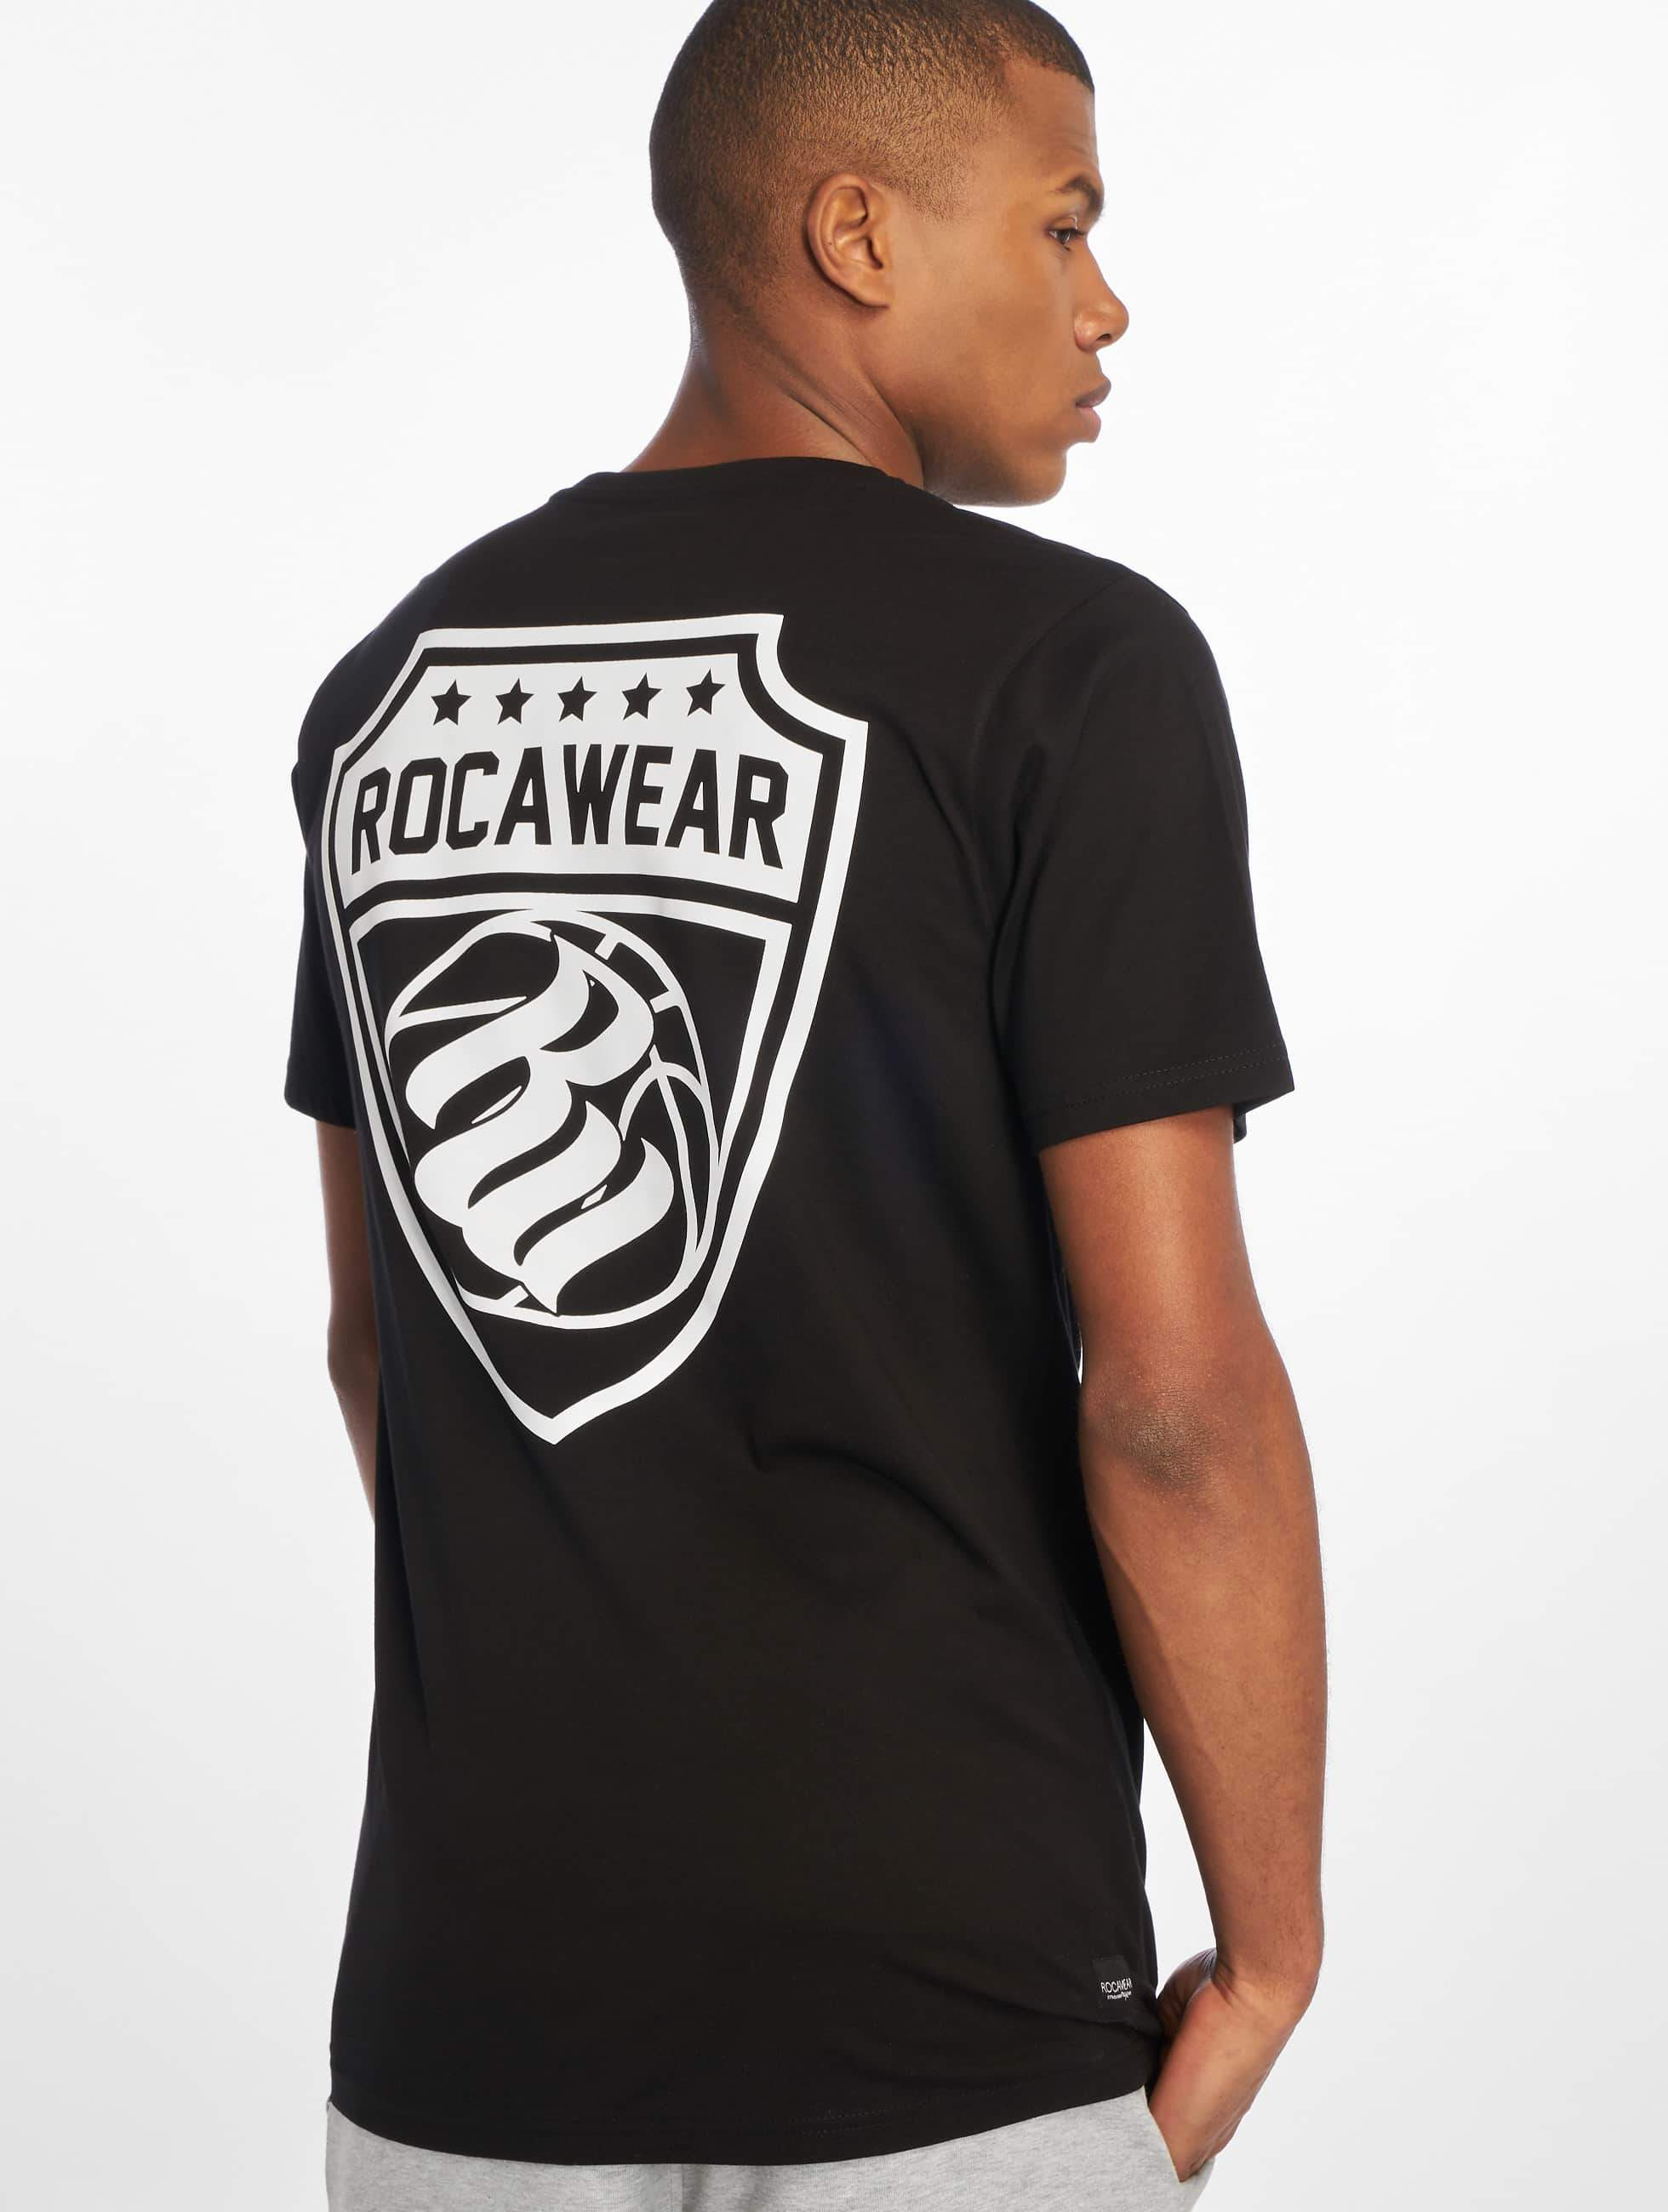 Rocawear / T-Shirt Jay in black S